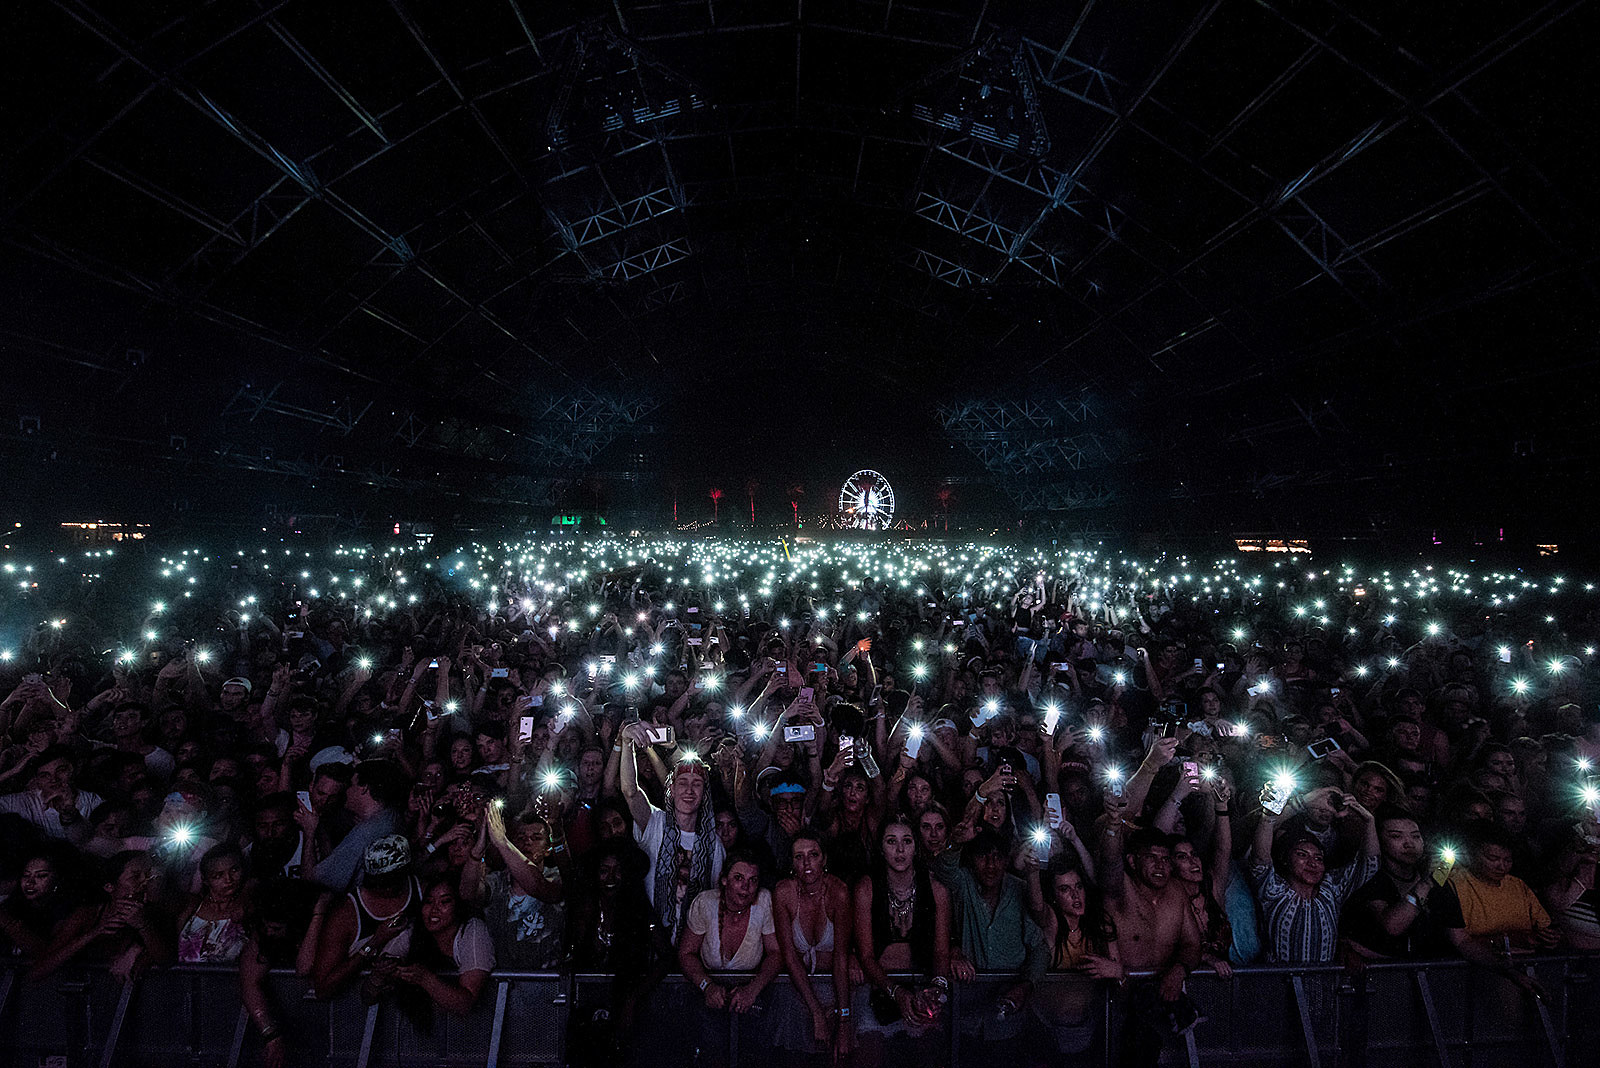 A Man Allegedly Stole More Than 100 Phones At Coachella